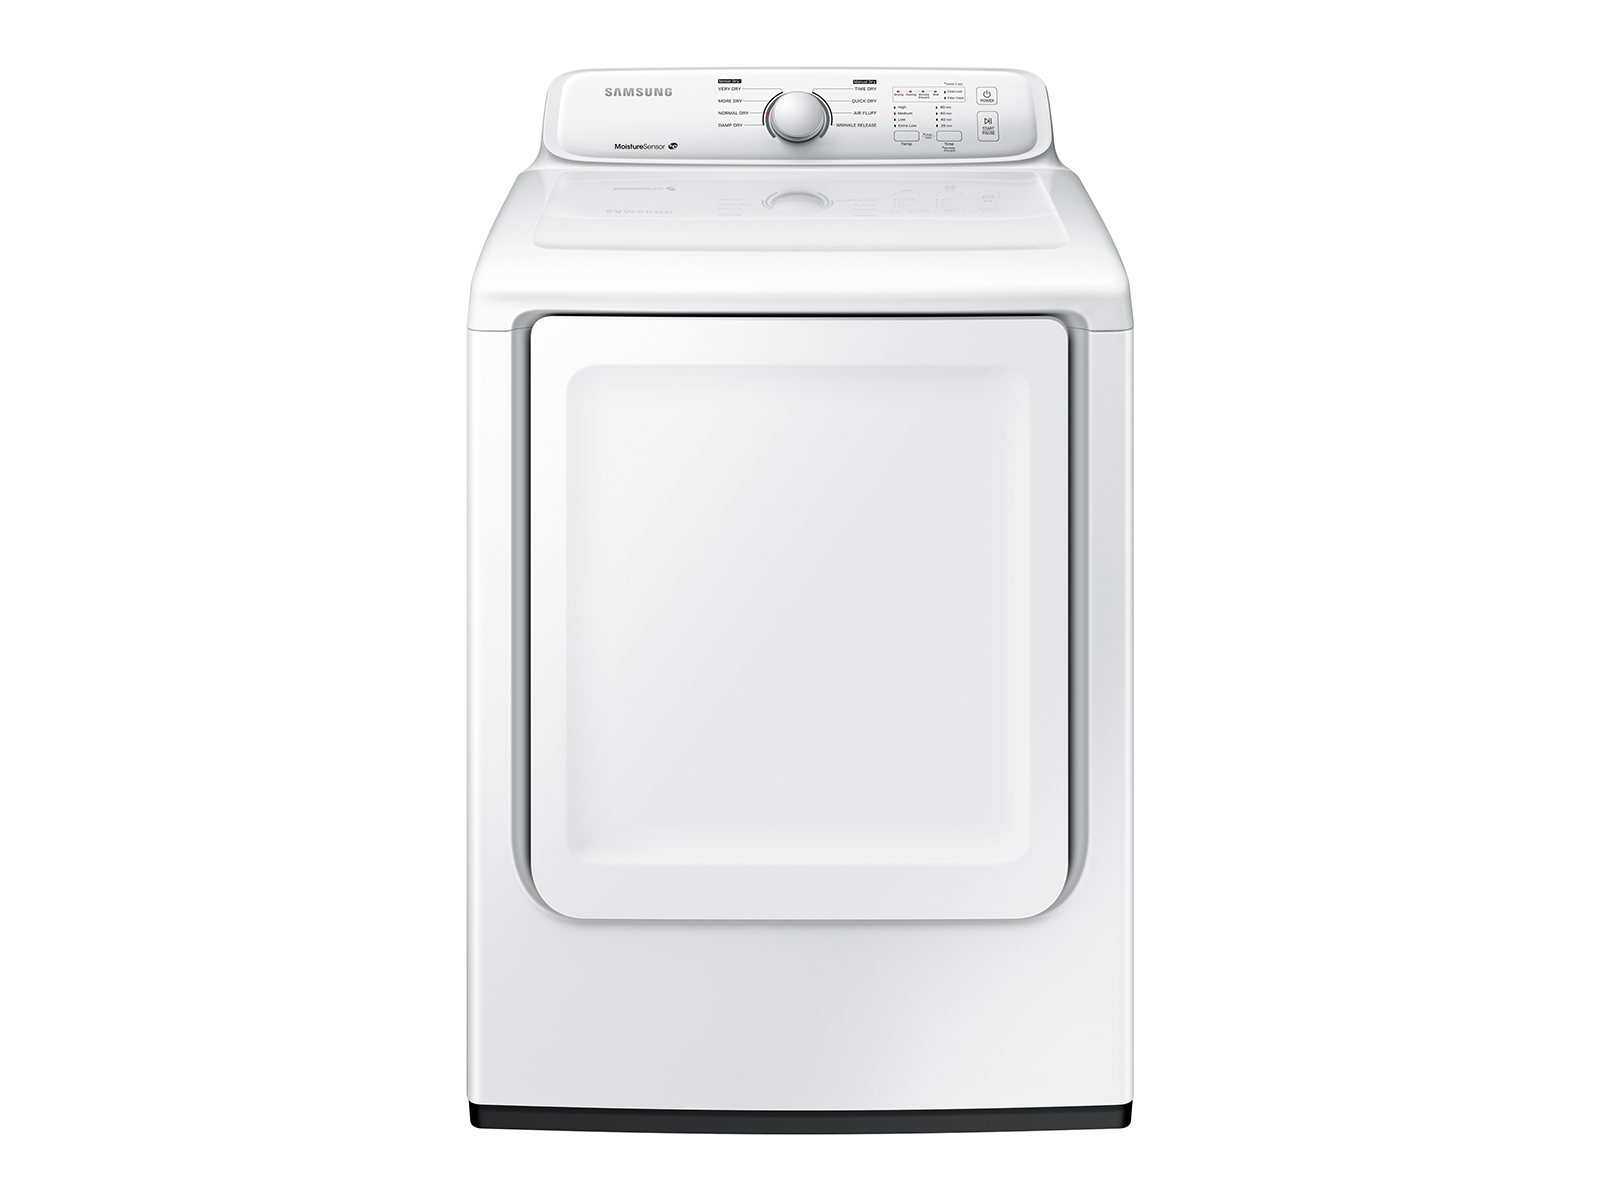 Samsung 7.2 cu. ft. Electric Dryer with Moisture Sensor in White